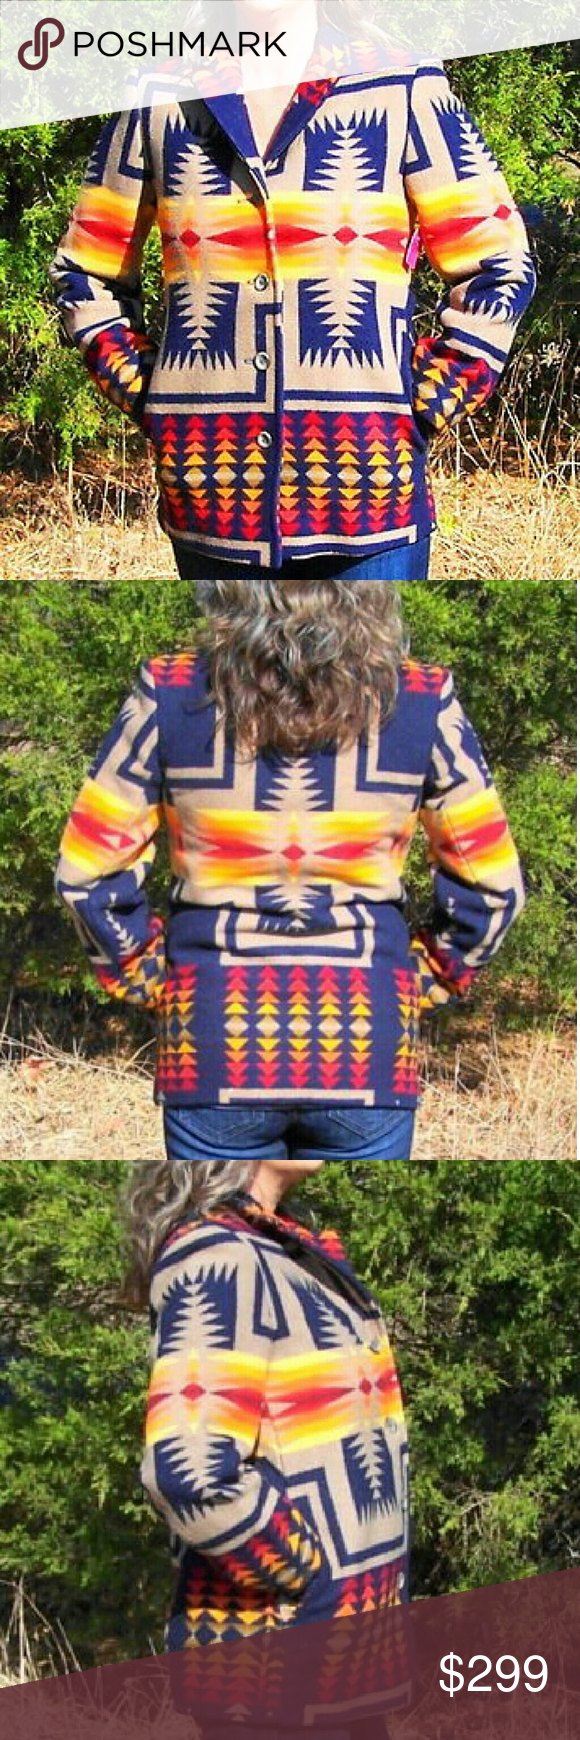 Pendleton Western Wear Indian Blanket Jacket. Stunningly Beautiful Vintage Pendleton Western Wear Wool Indian Blanket Jacket.  Women's Size Medium. Very vibrant colorful jacket. This jacket will be sure to be a favorite in your wardrobe. It's in great condition, clean no stains, all original buttons. It does have some minor moth bites but nothing noticeable. Pendleton Jackets & Coats Blazers